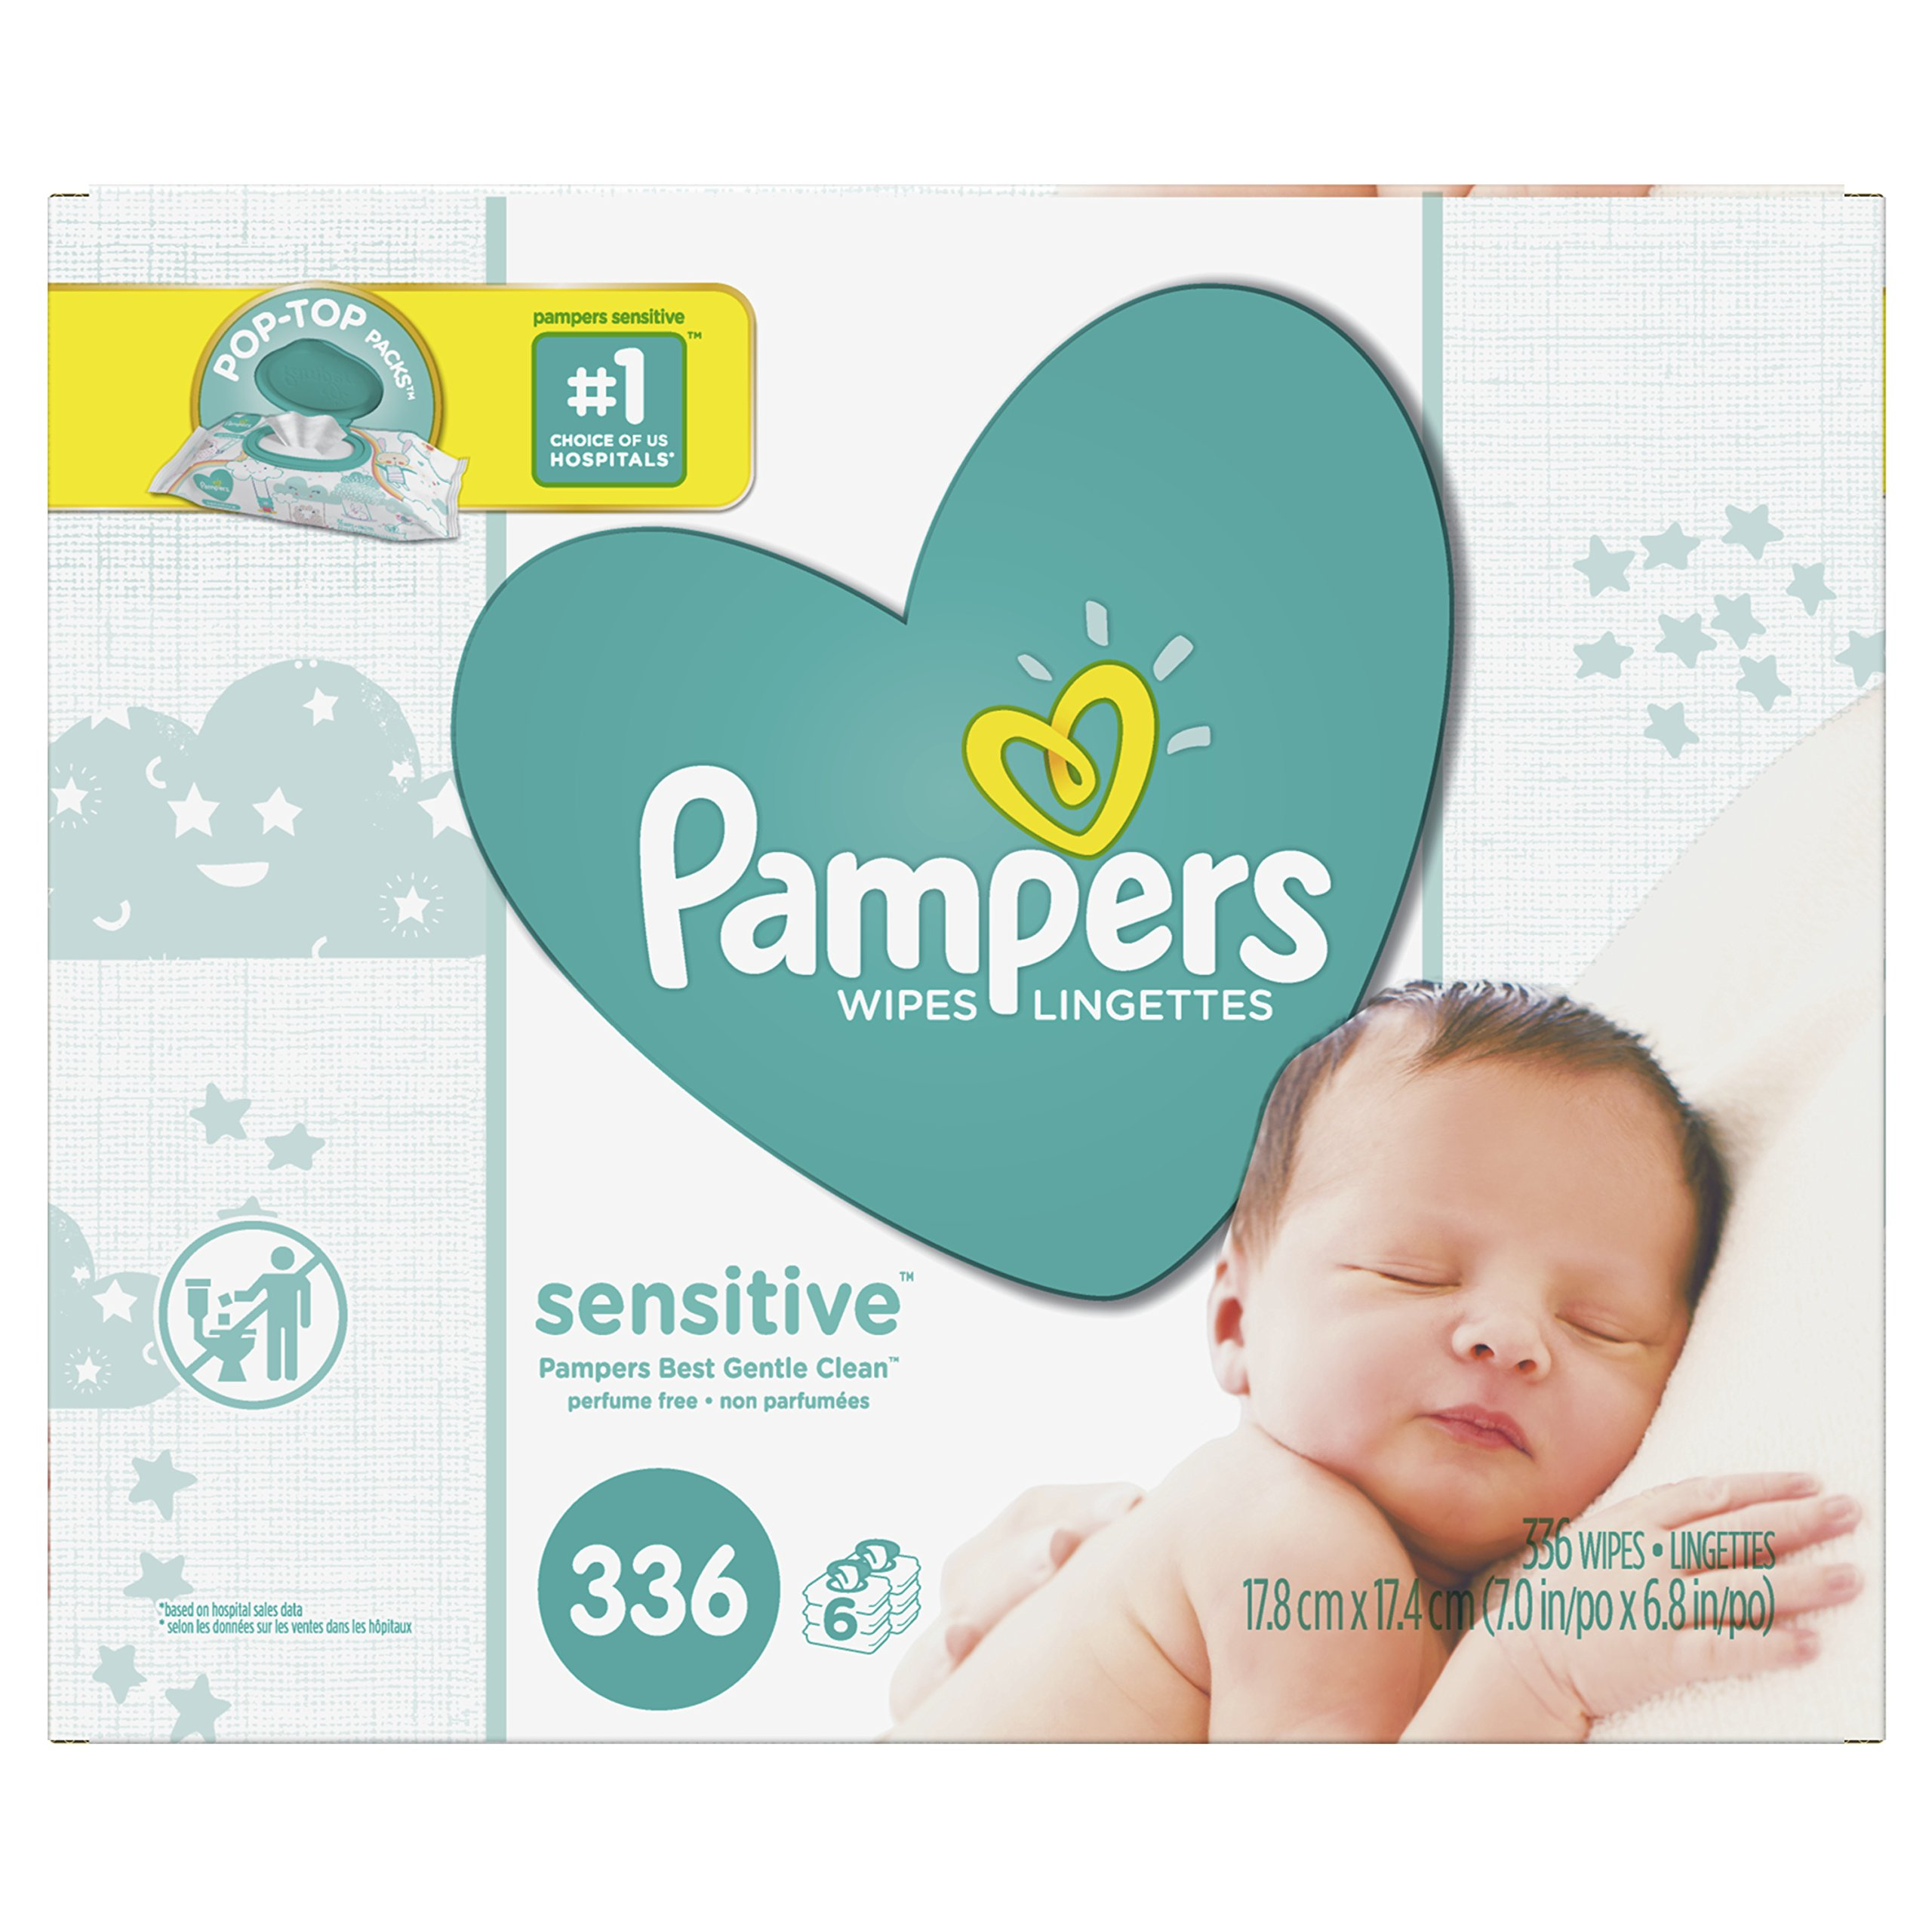 Pampers Sensitive Water-Based Baby Diaper Wipes – Hypoallergenic and Unscented